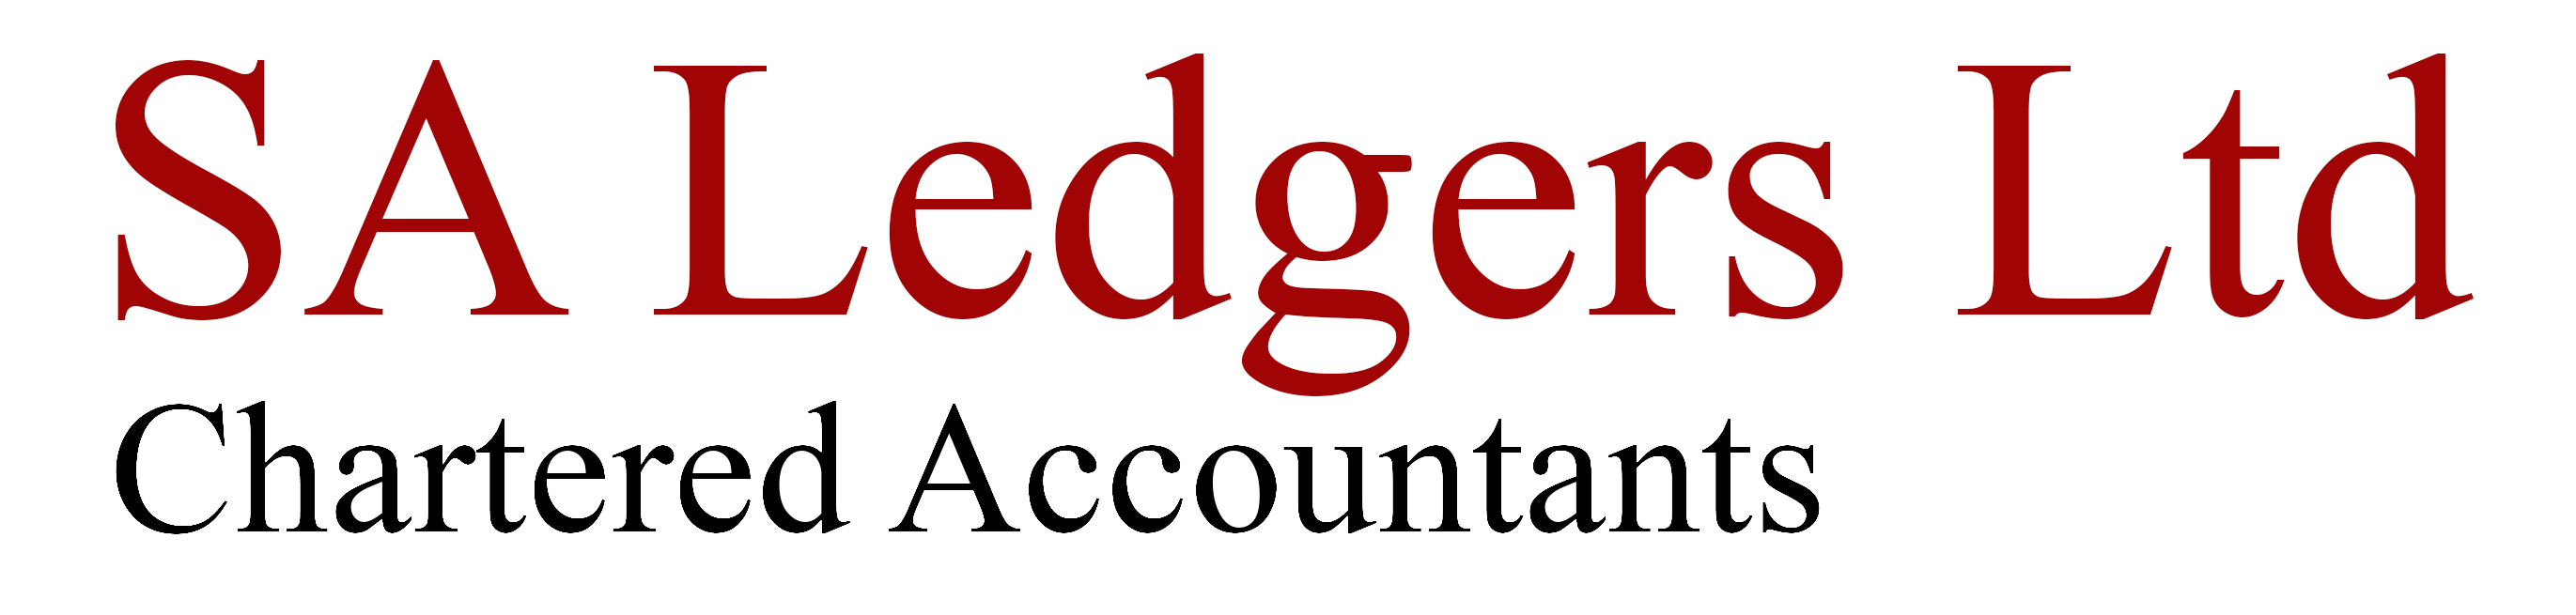 SA Ledgers Ltd